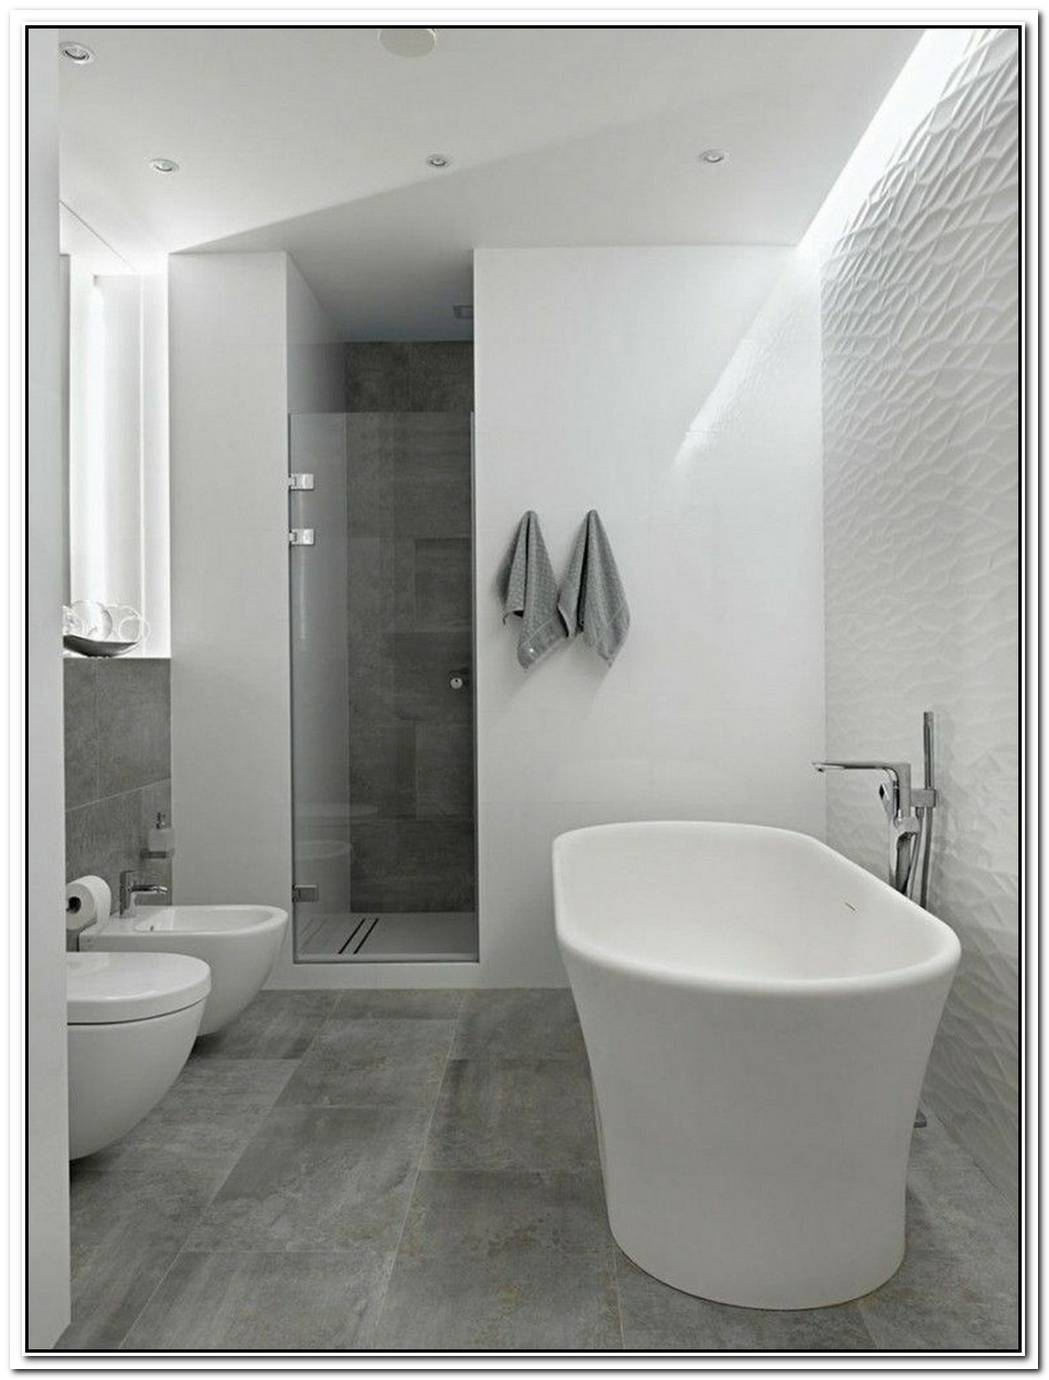 Floor Tile Bathroom Modern Concrete